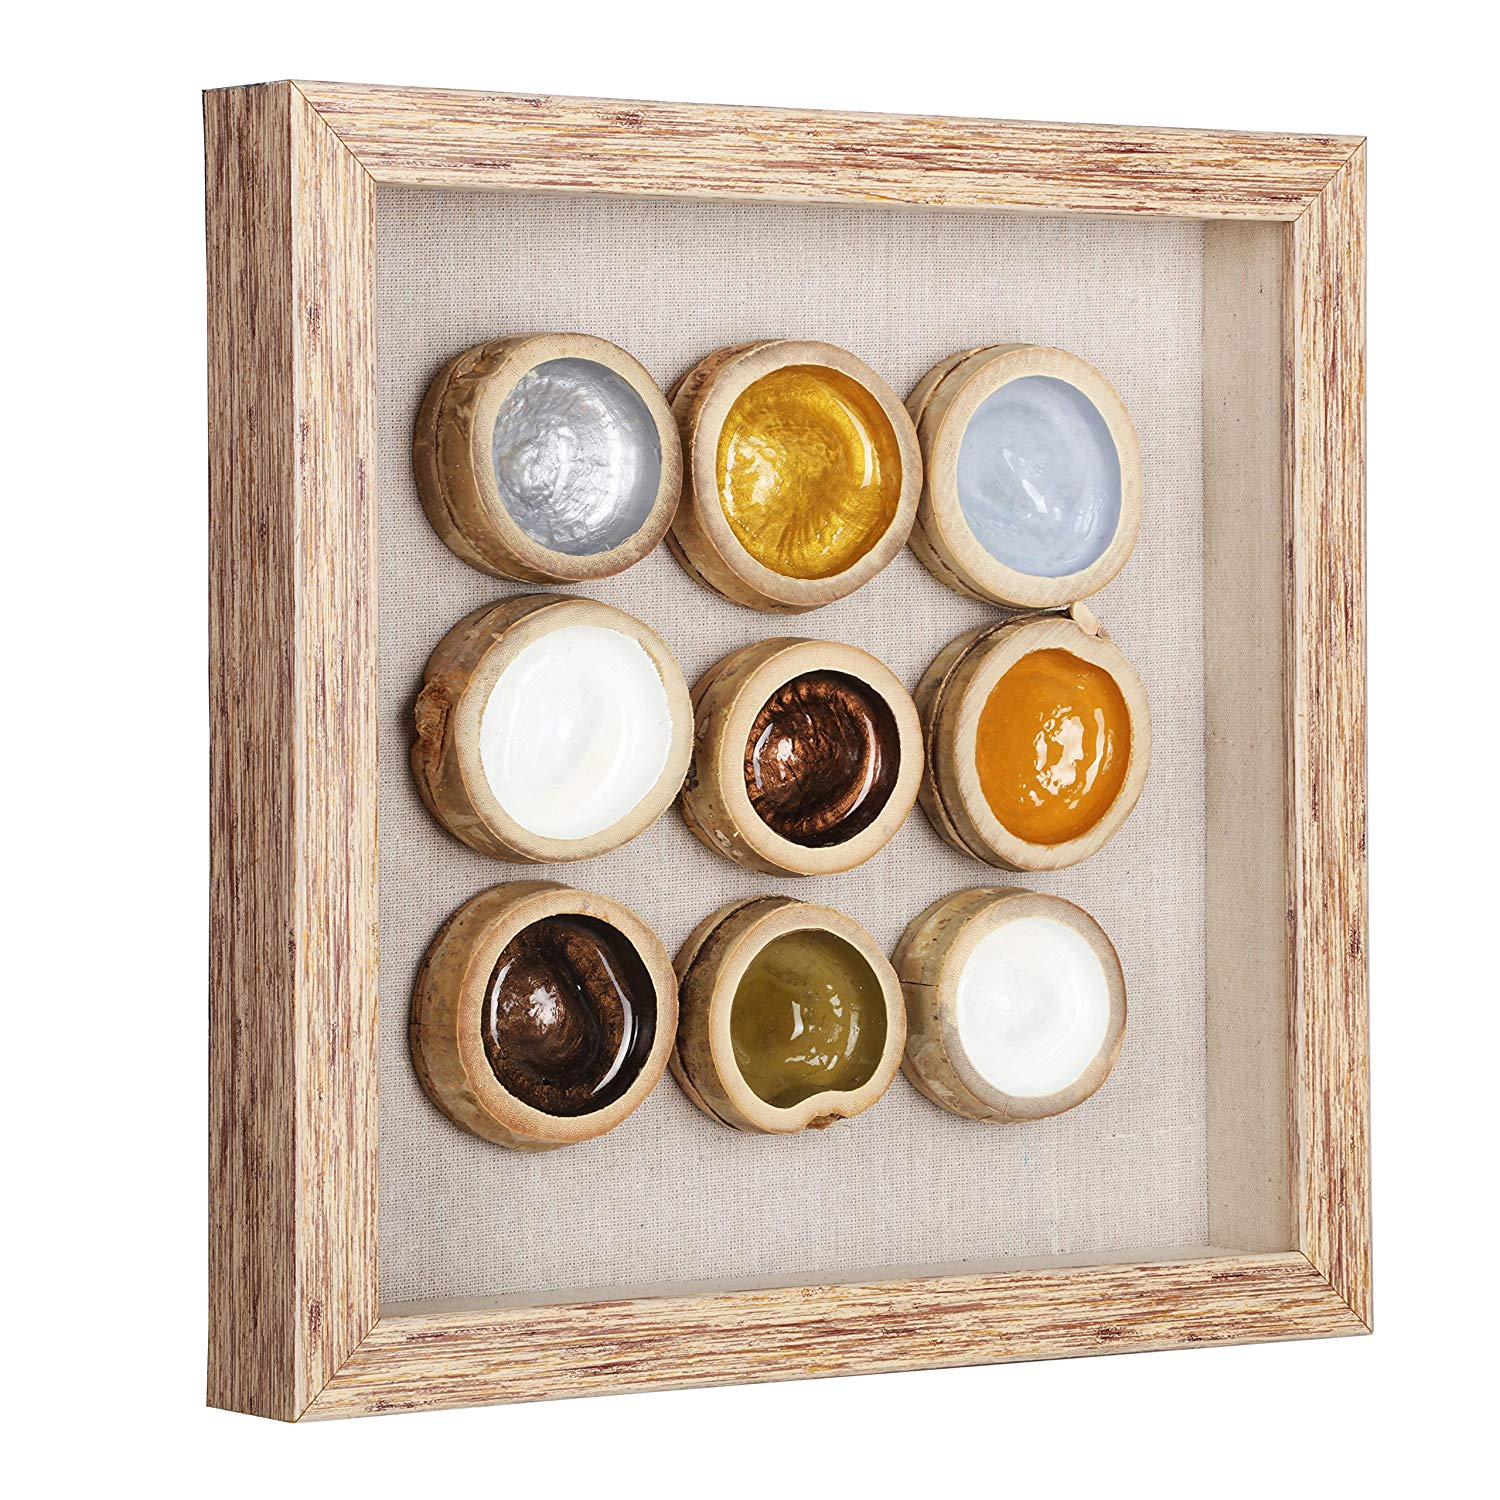 Shadow Box with Glass Cover, Natural Bamboo Art Frame for Wall Decor, 14 x 14 inch